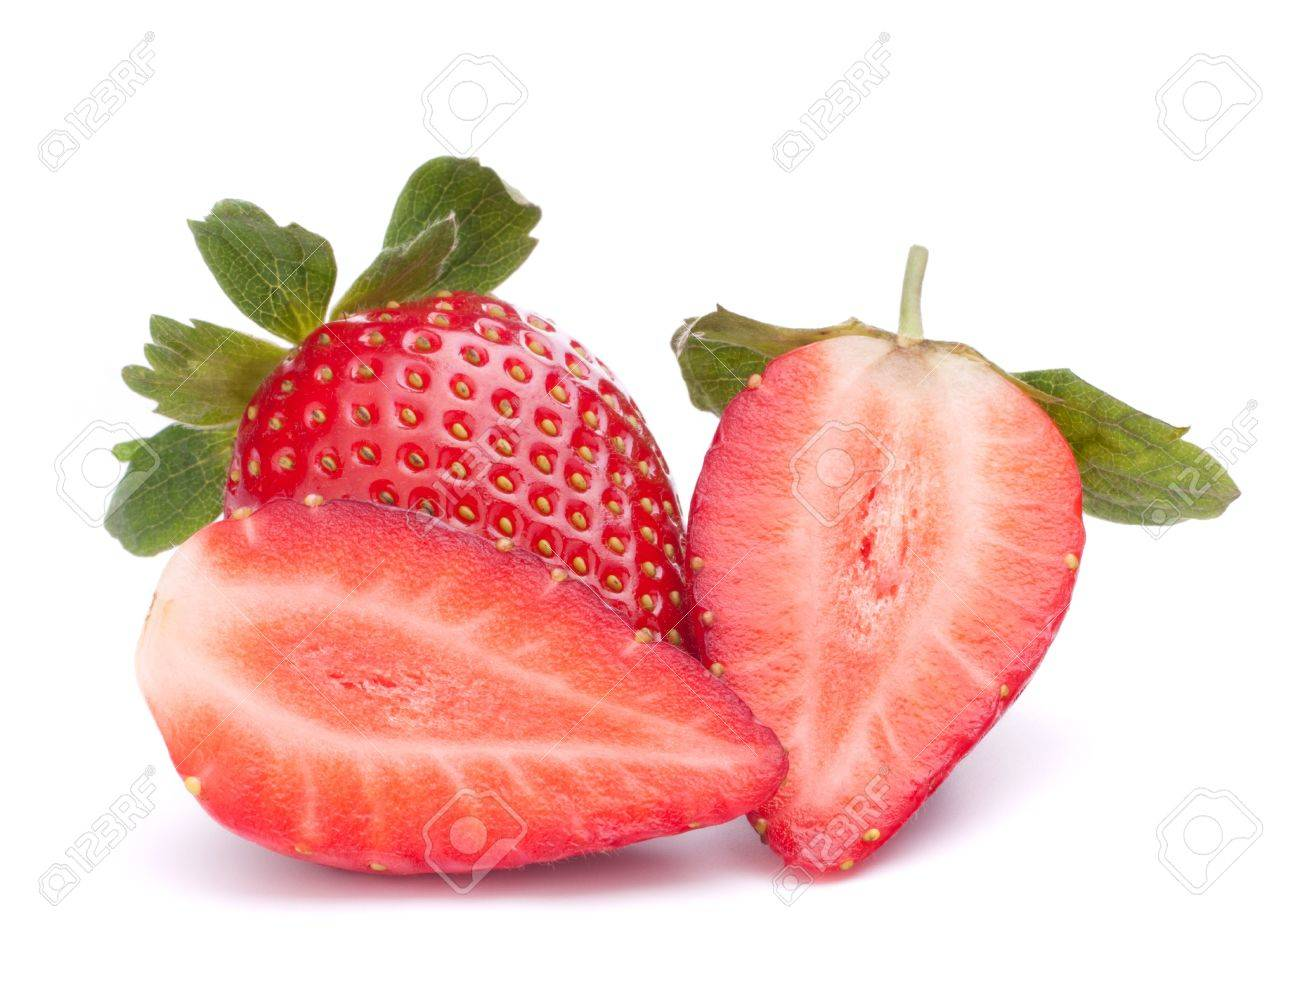 Strawberry isolated on white background cutout Stock Photo - 14131251